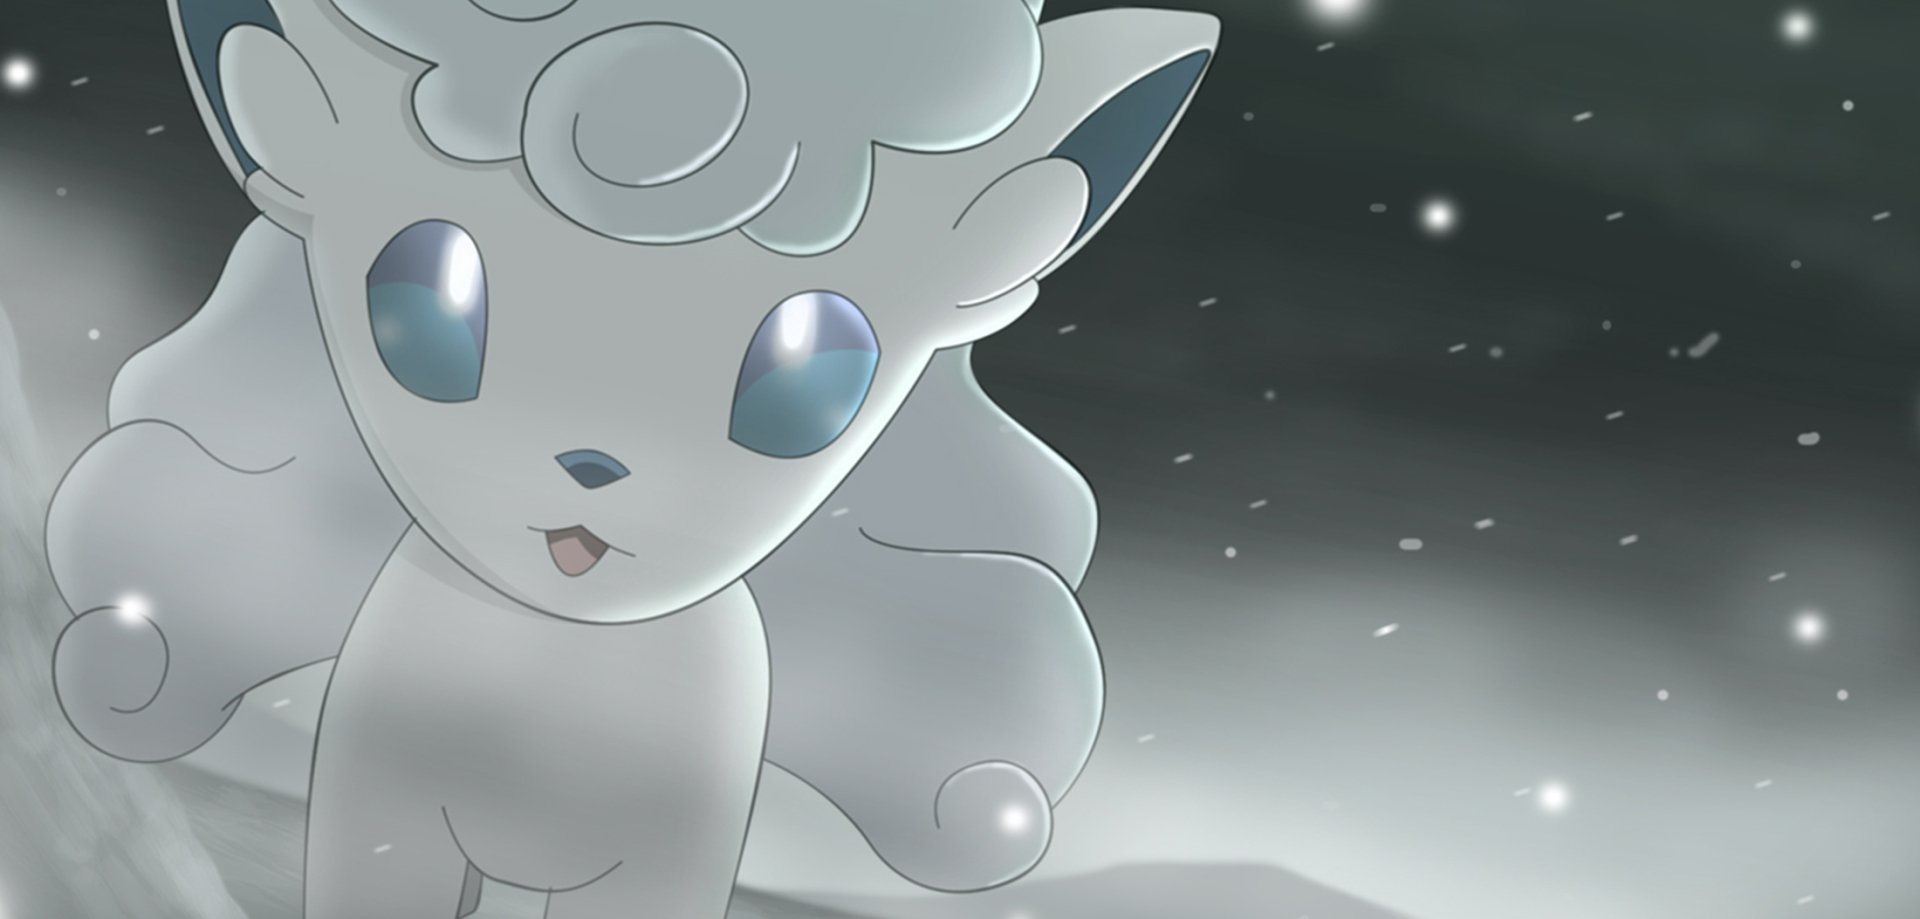 Pokemon Sun And Moon Wallpaper: Alolan Vulpix Wallpaper And Background Image